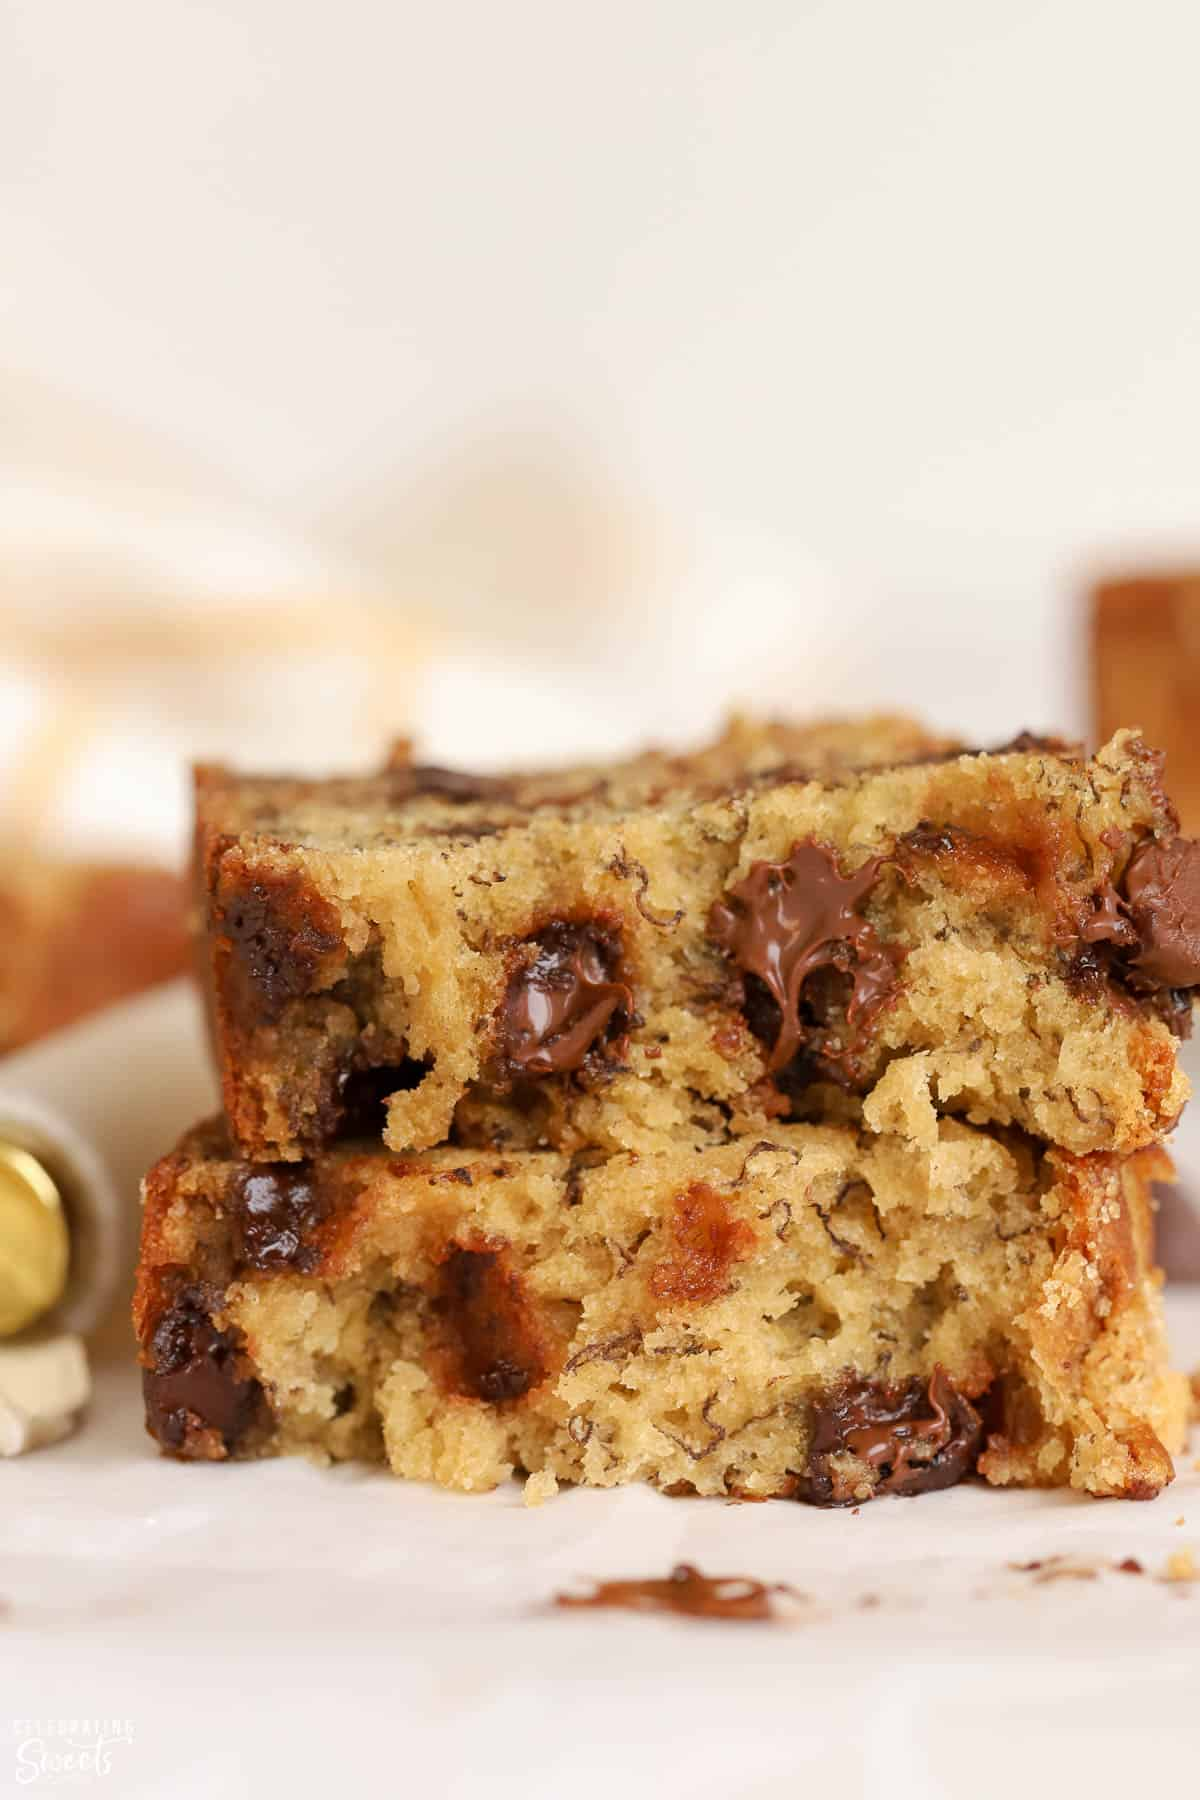 Closeup of a slice of banana bread filled with chocolate chips.